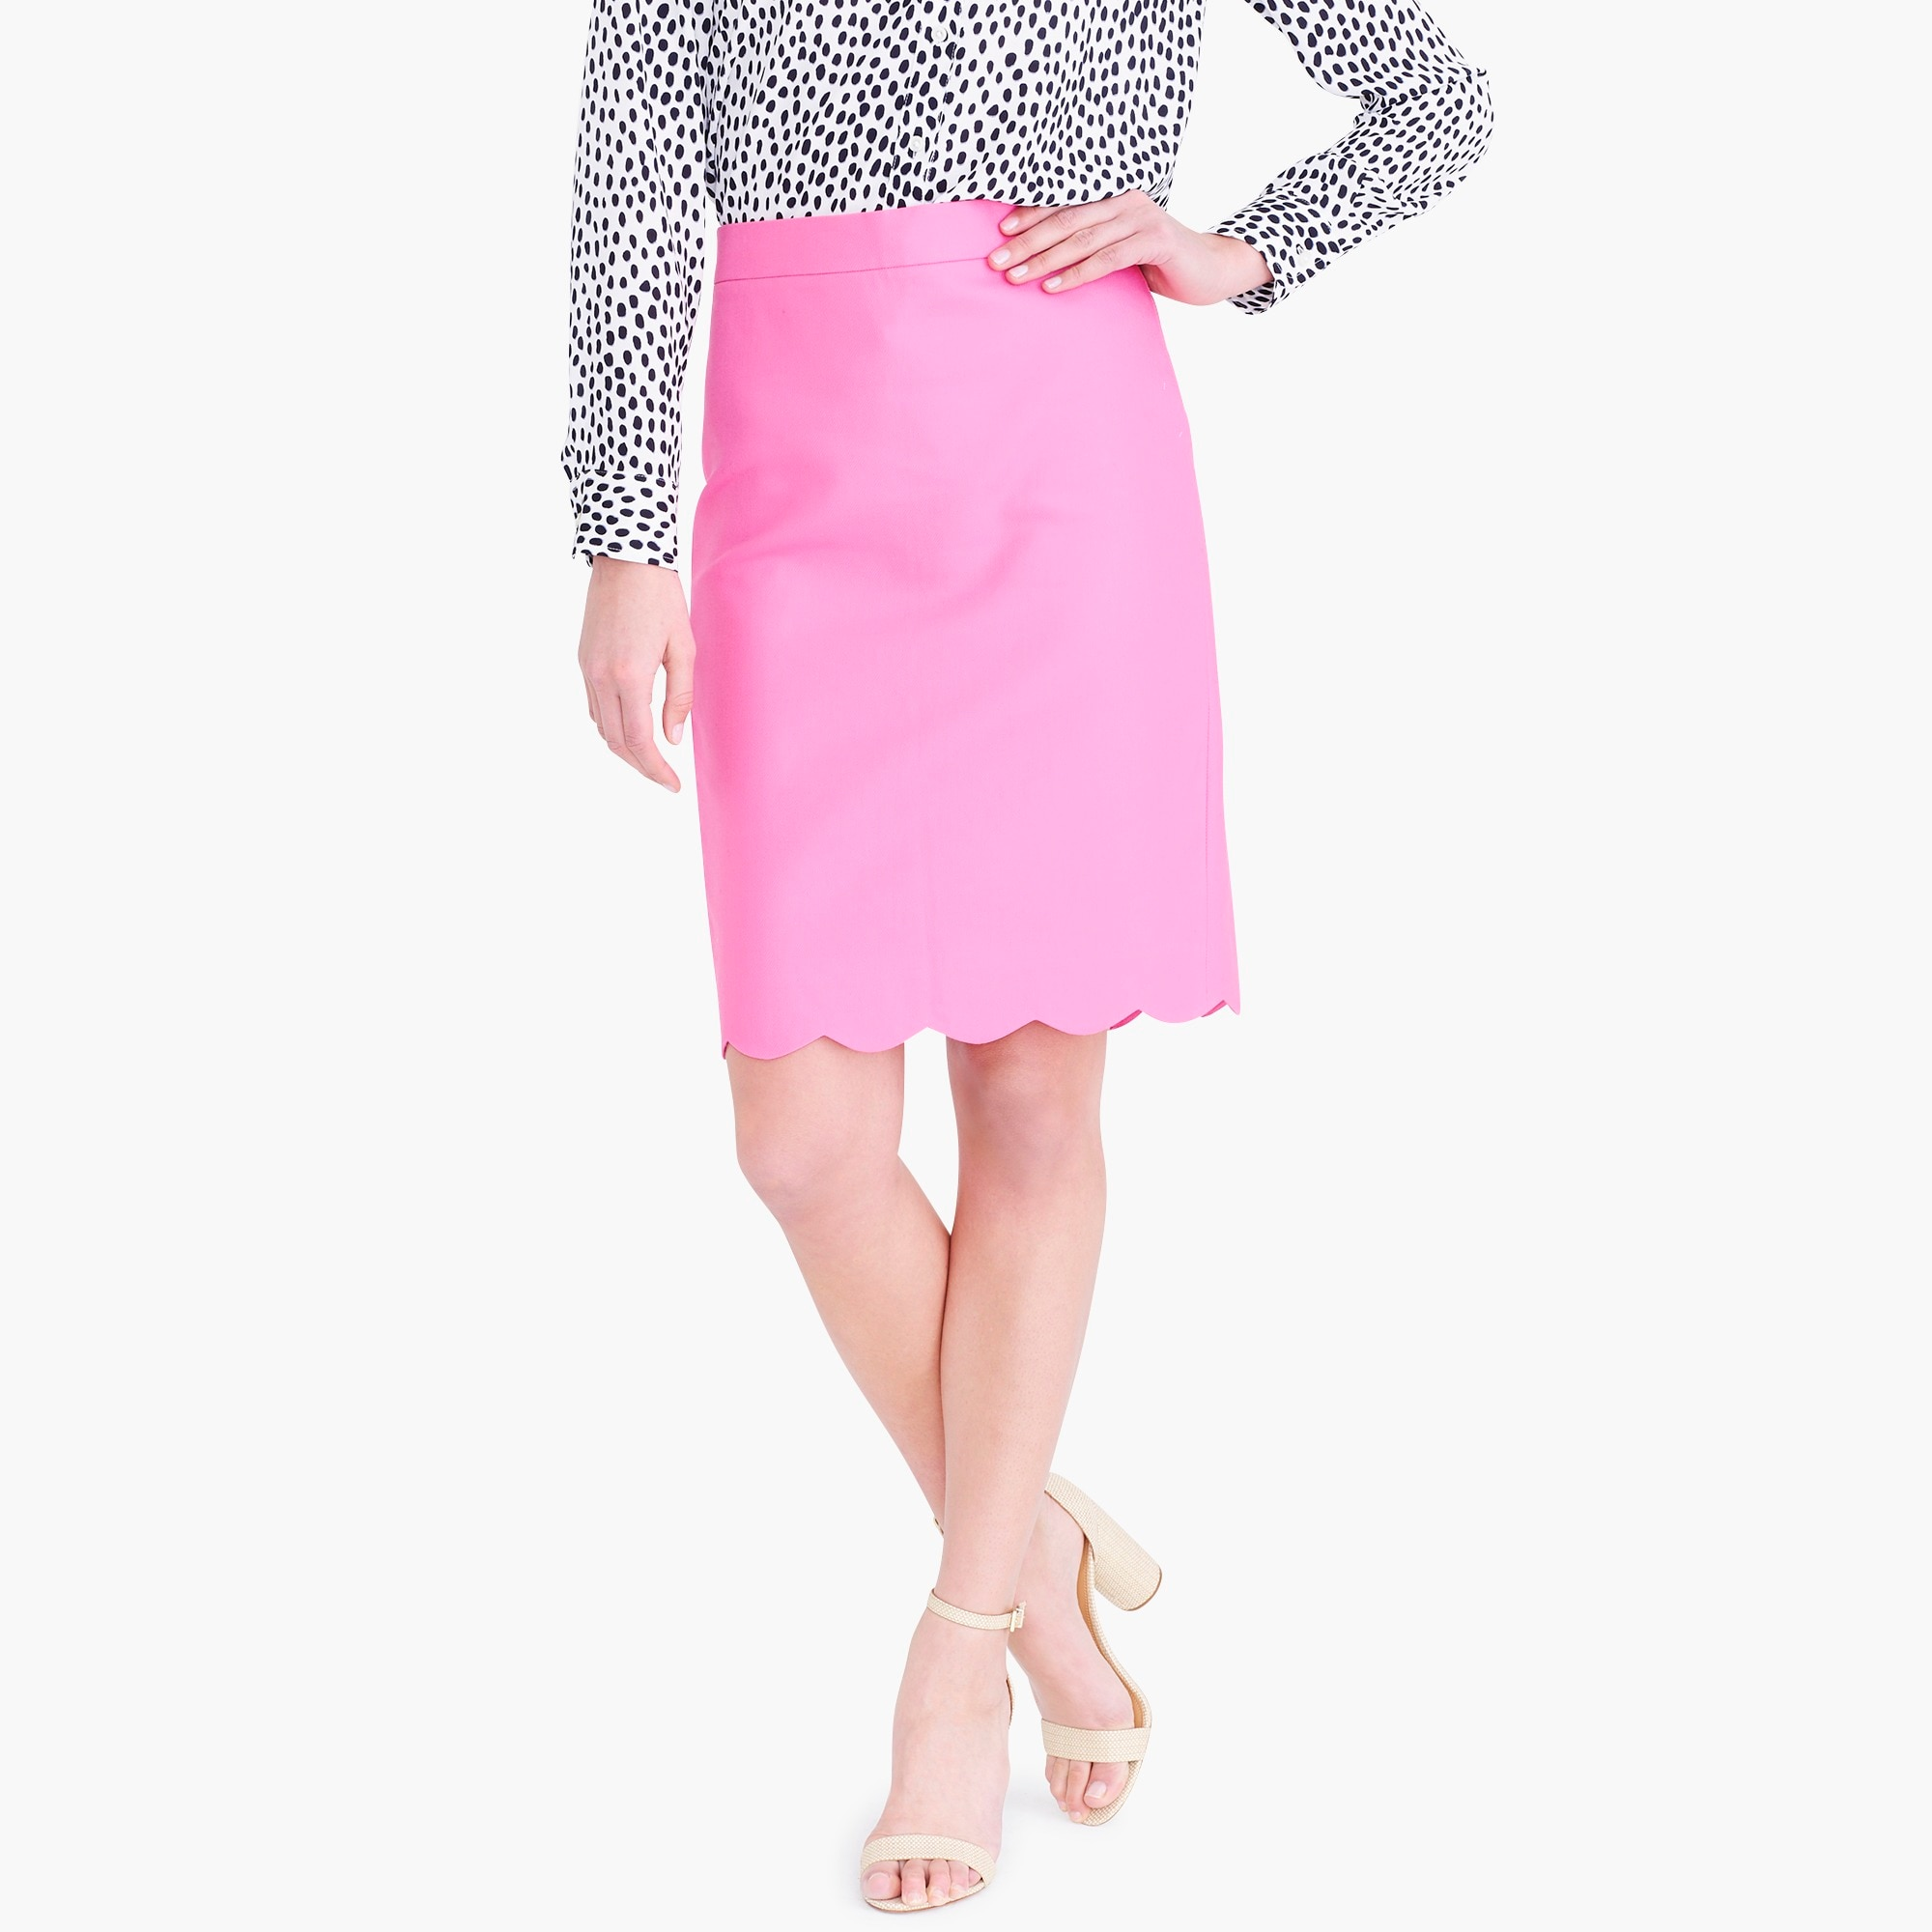 Image 1 for Scalloped pencil skirt